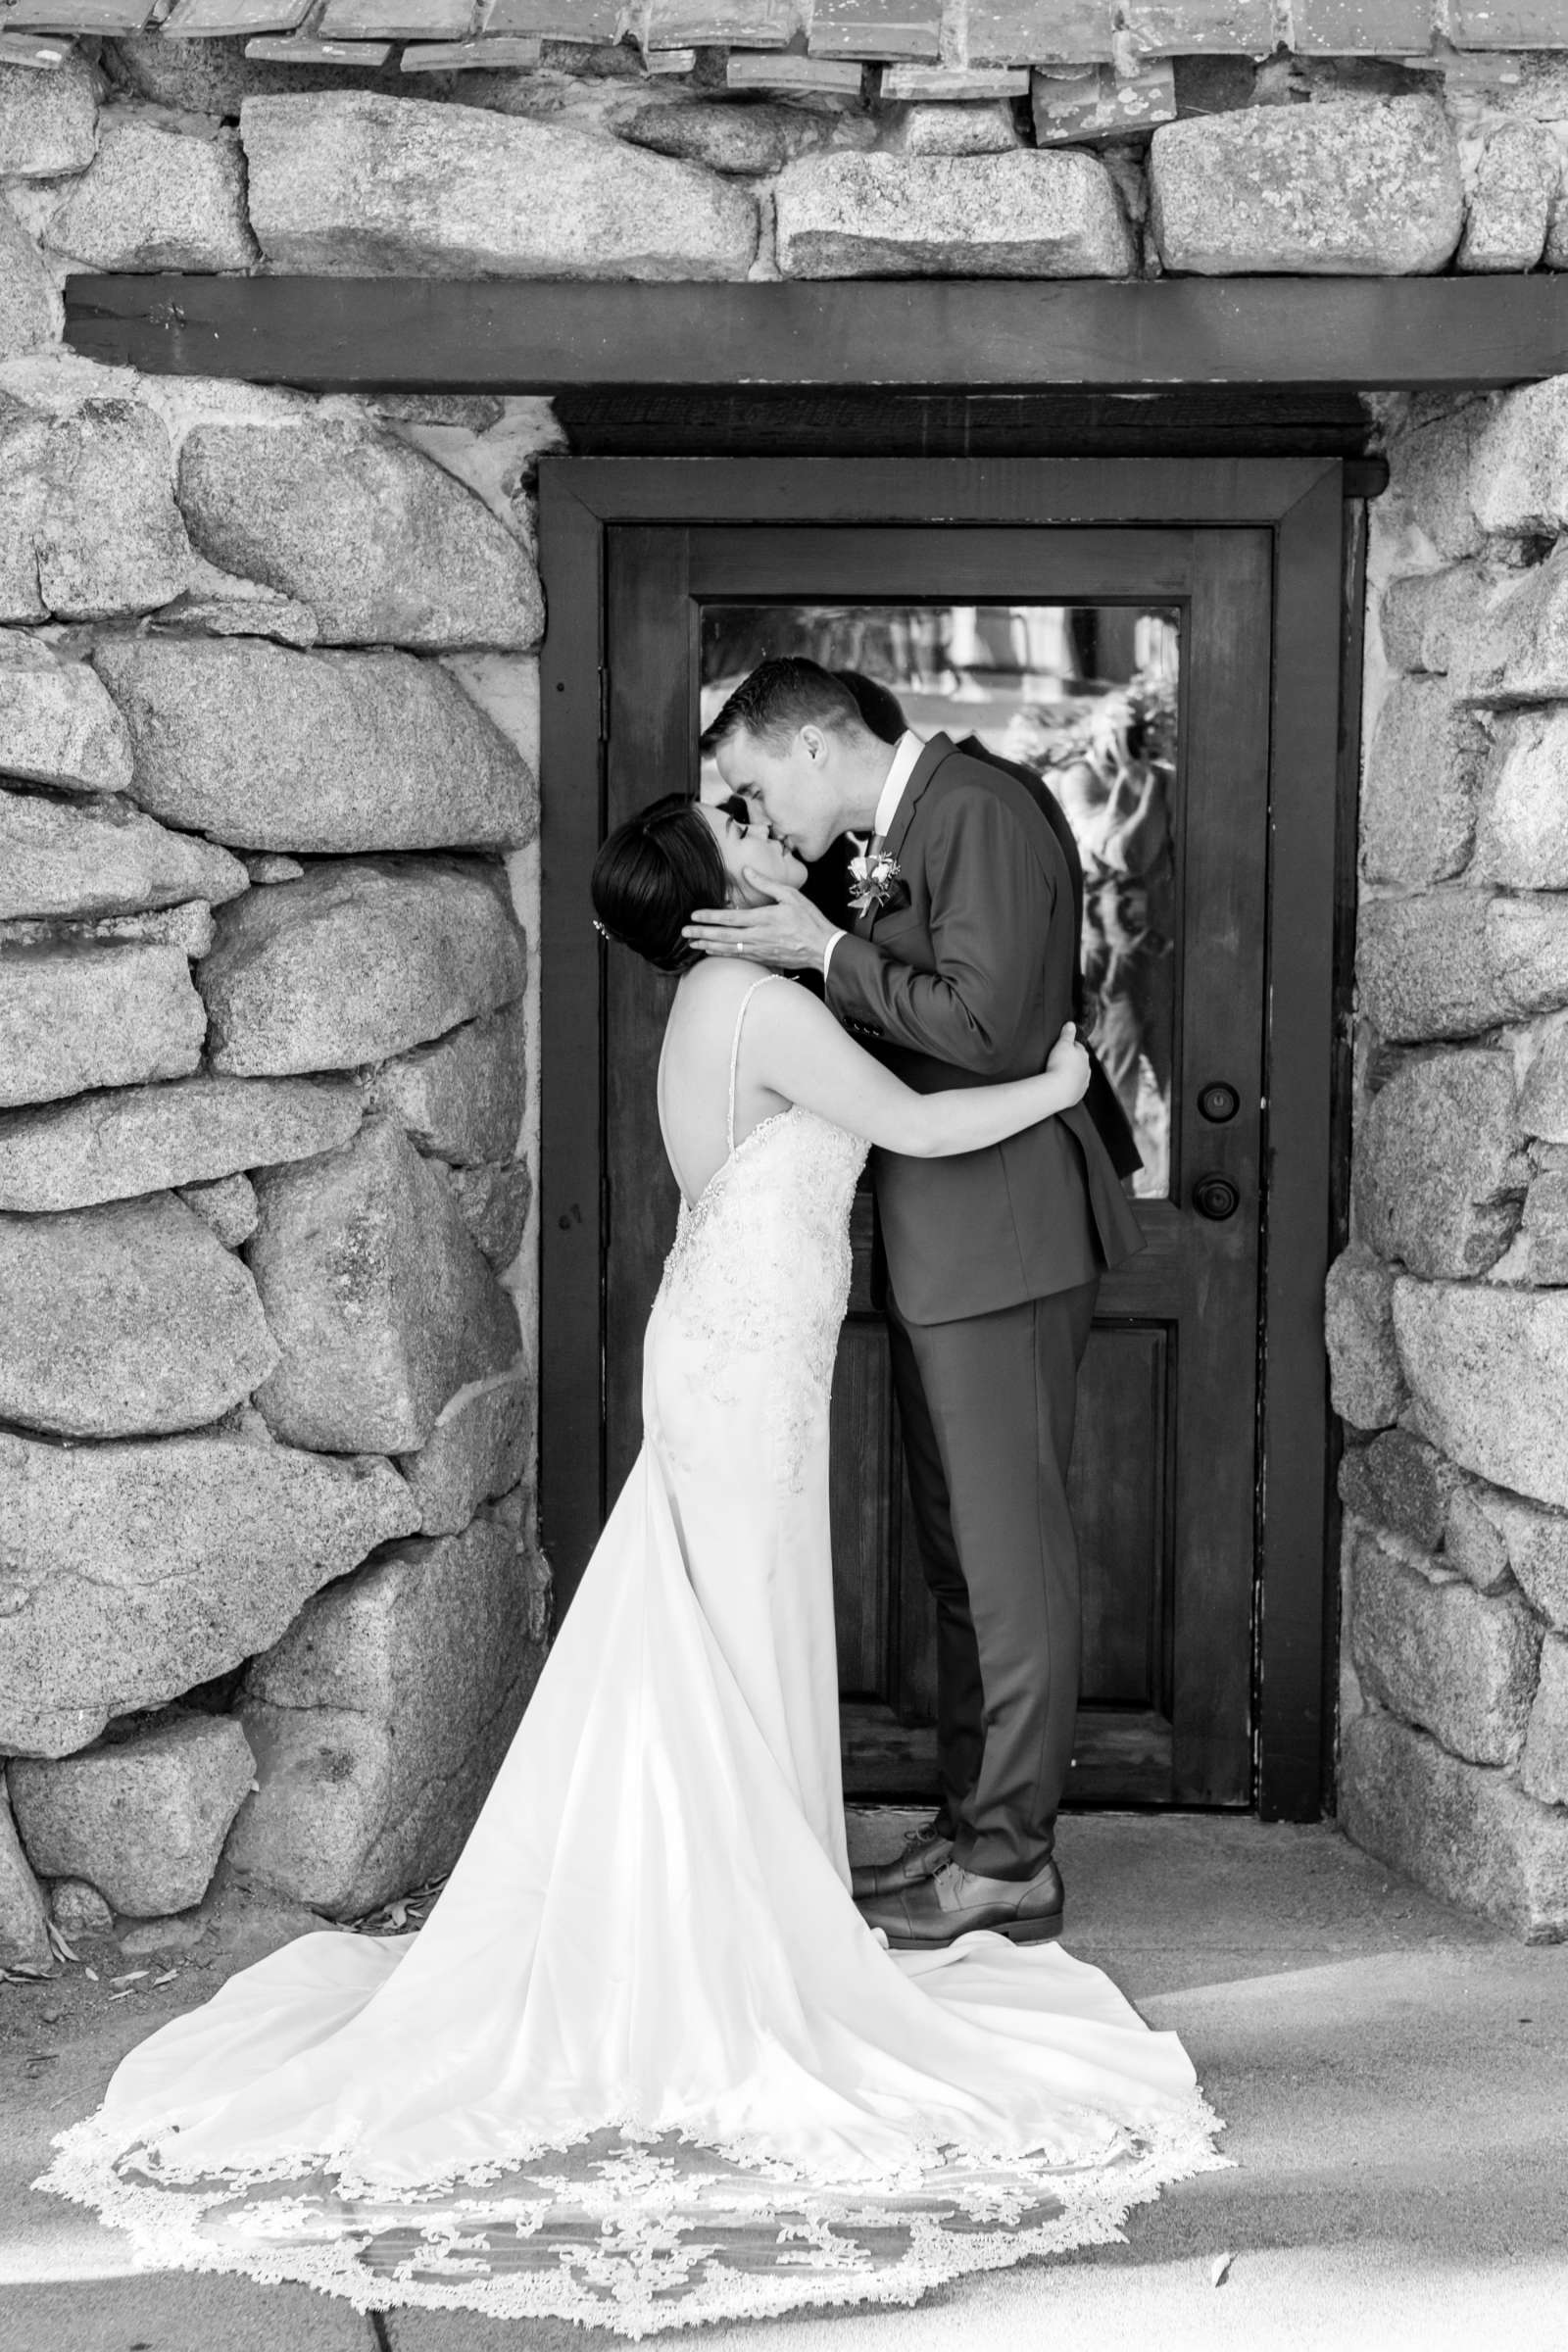 Mt Woodson Castle Wedding coordinated by I Do Weddings, Aya and Jared Wedding Photo #486973 by True Photography